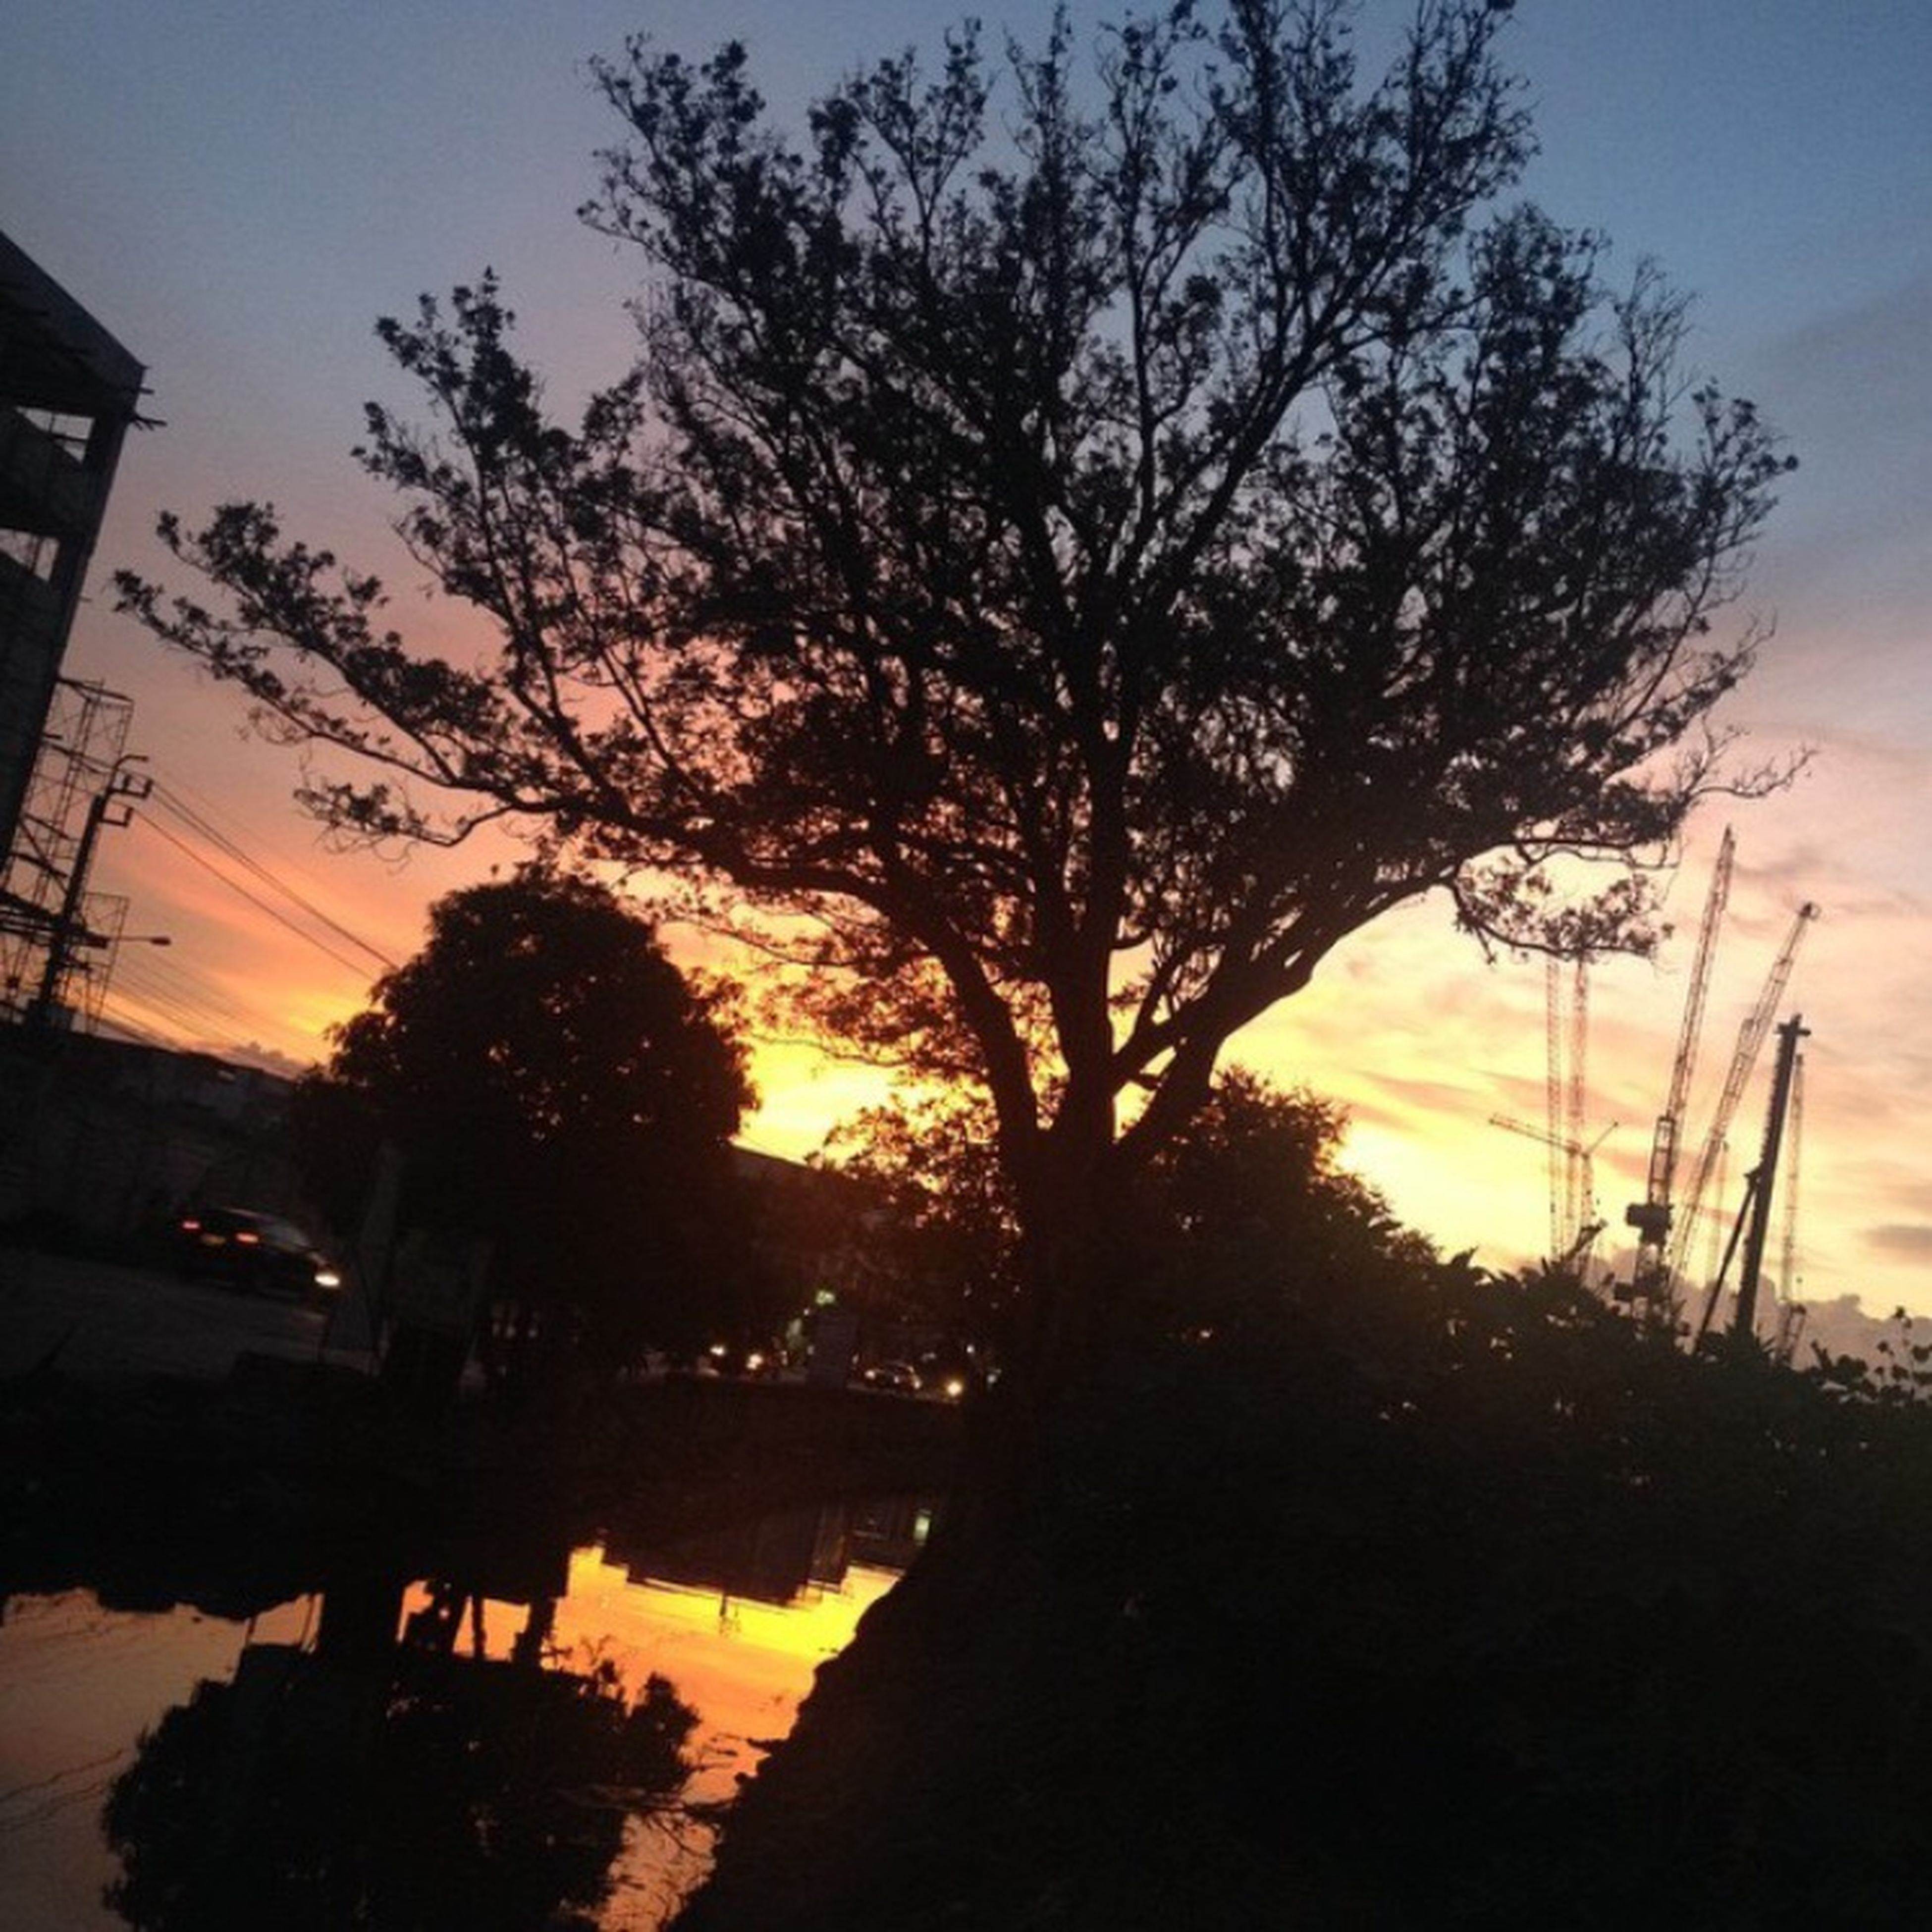 sunset, silhouette, tree, sky, orange color, water, tranquility, beauty in nature, scenics, tranquil scene, nature, reflection, cloud - sky, branch, idyllic, growth, river, power line, no people, dusk